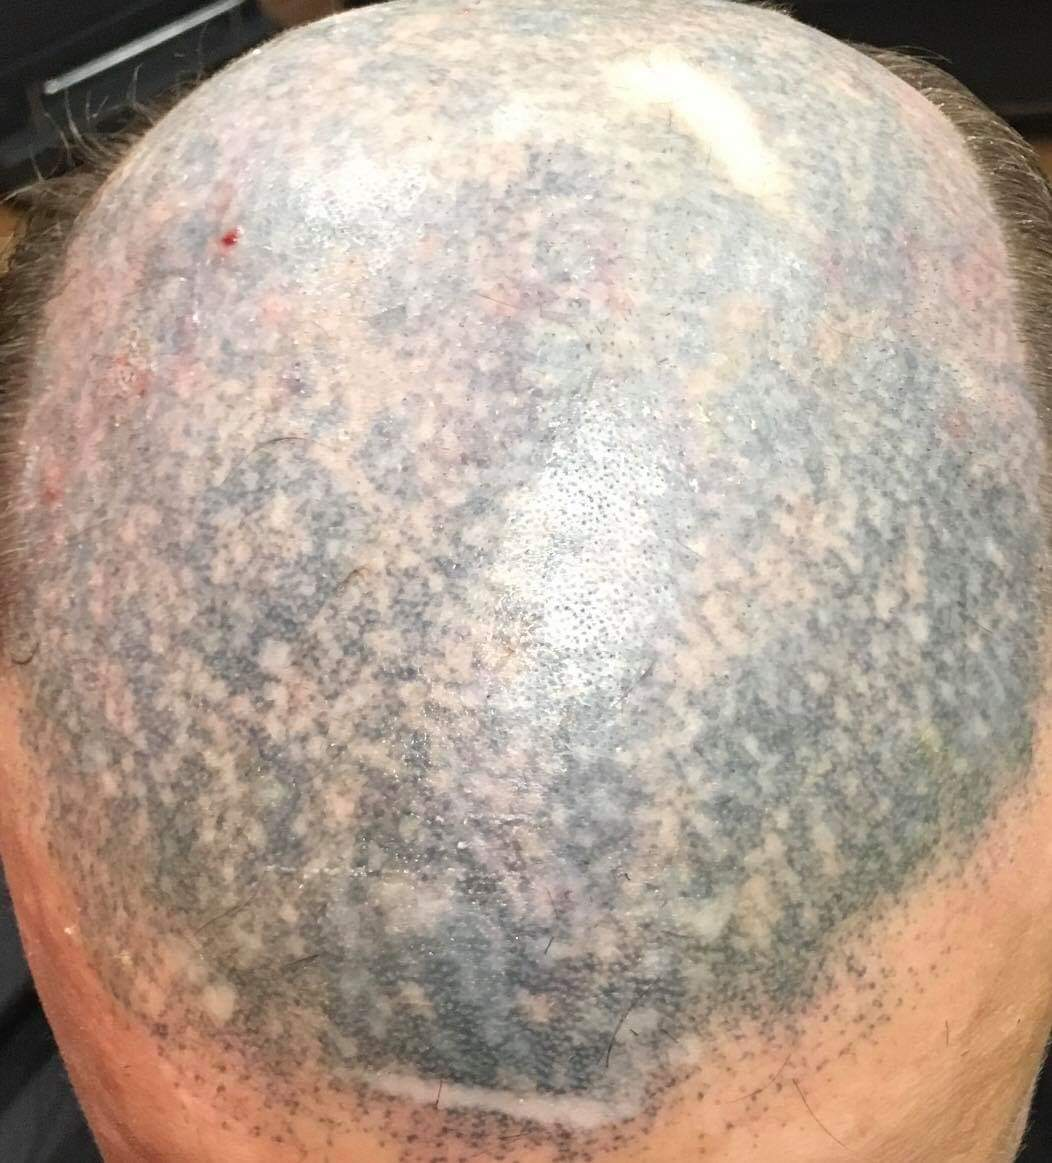 The Bald Cure Mobile Service In The Comfort Of Your Home We Beat Any Price FB_IMG_1573995414219 Pictures. Explore Our Photo Gallery